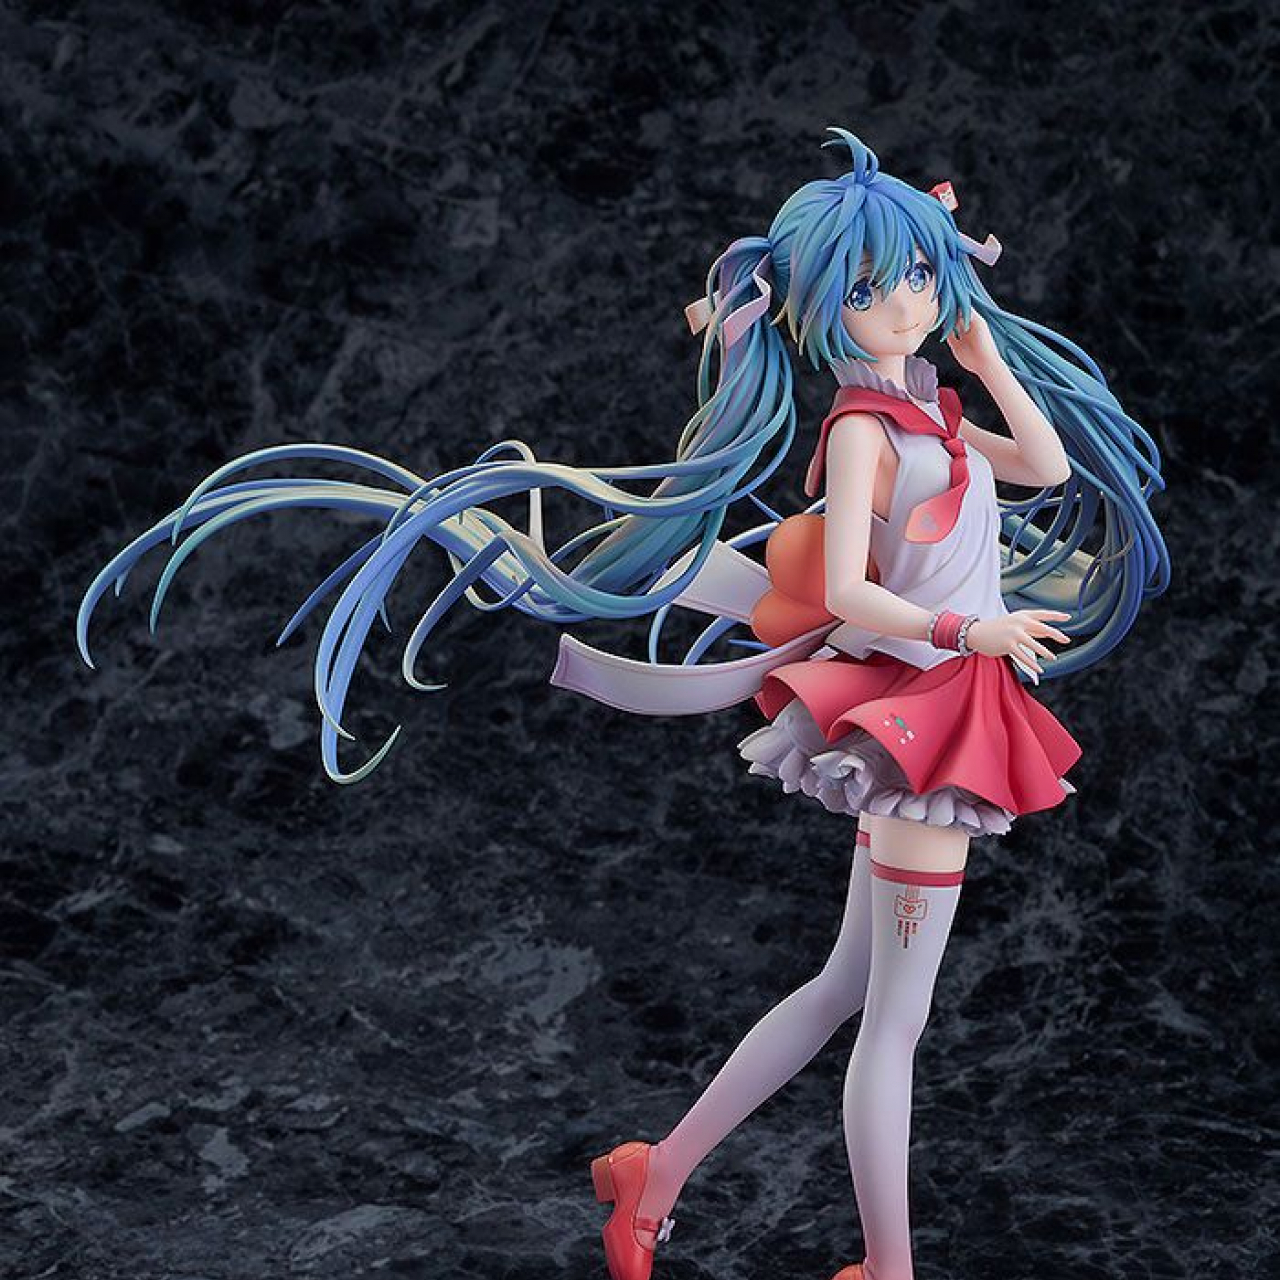 Character Vocal Series 01 Statue 1/8 Hatsune Miku The First Dream Ver. 23 cm